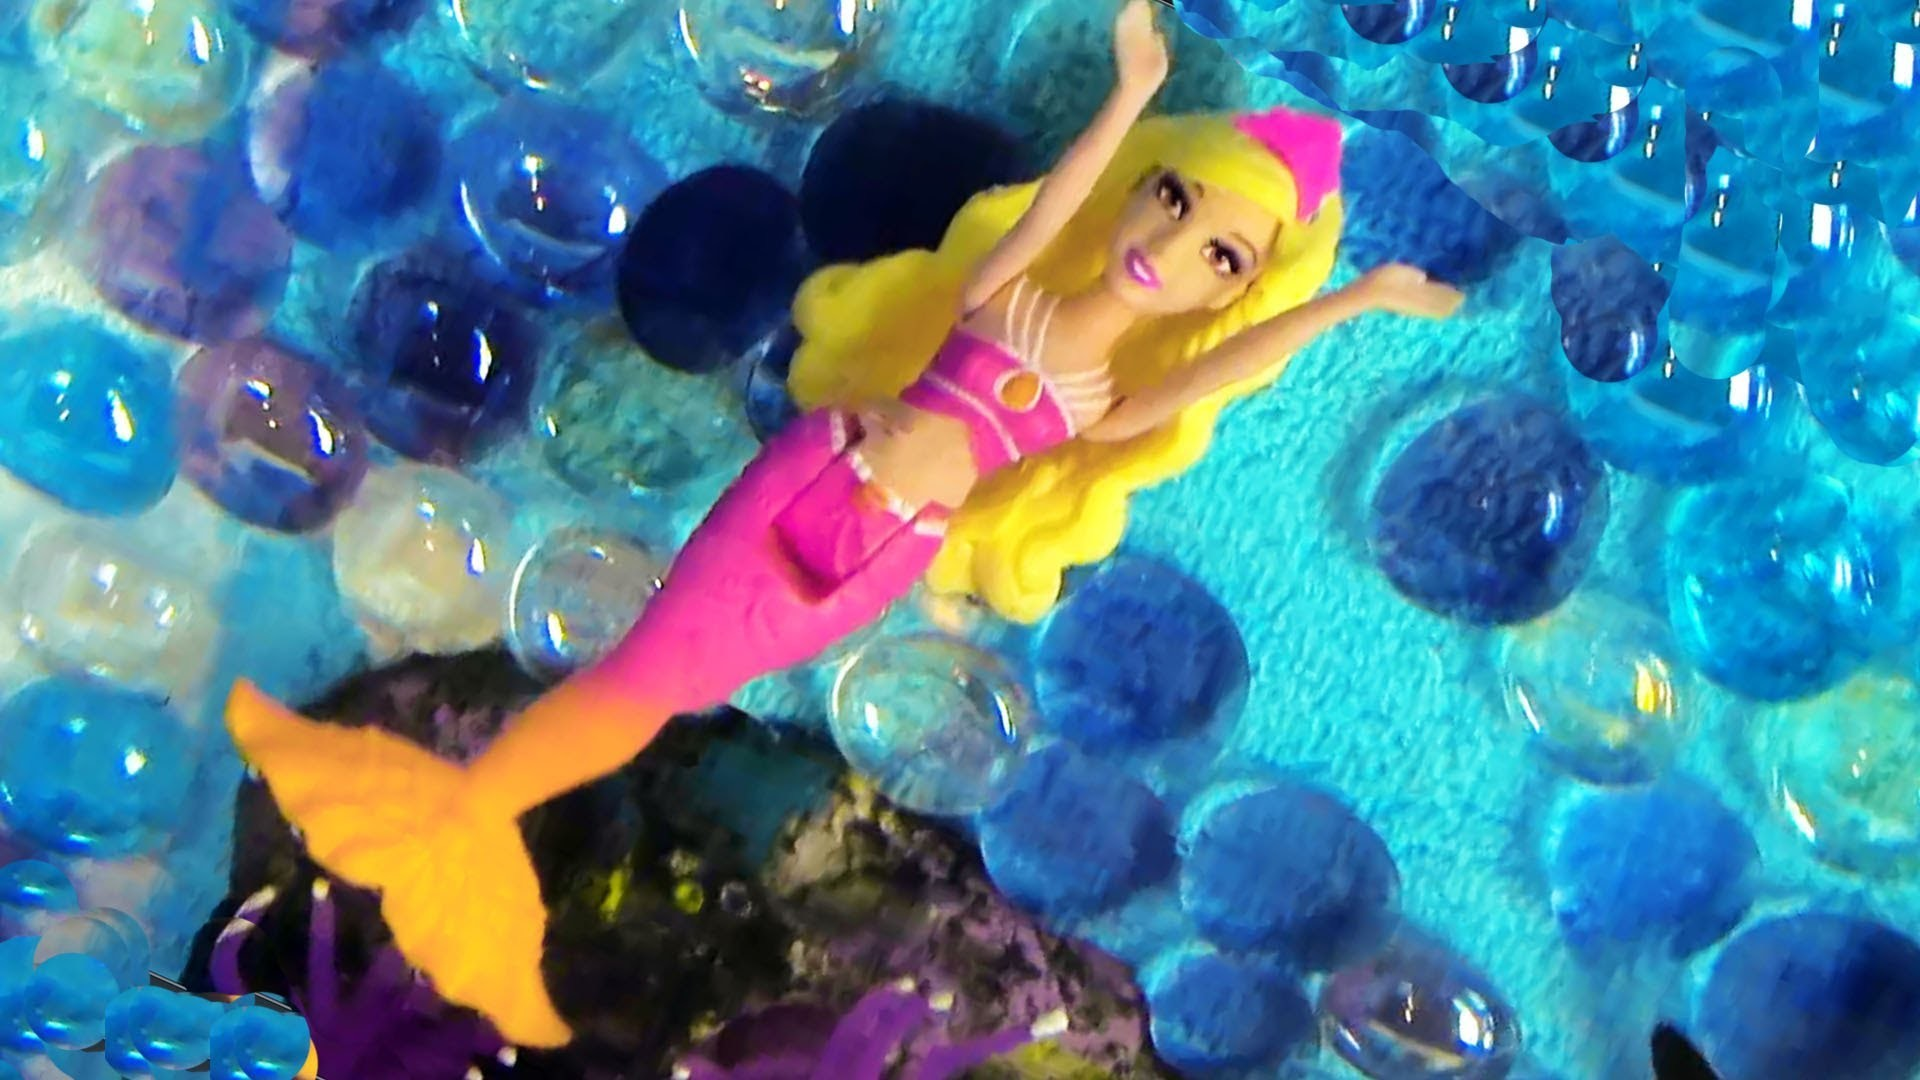 Mermaid Barbie The Pearl Princess Mini Doll Orange Dolphin Bathtub Toy Opening